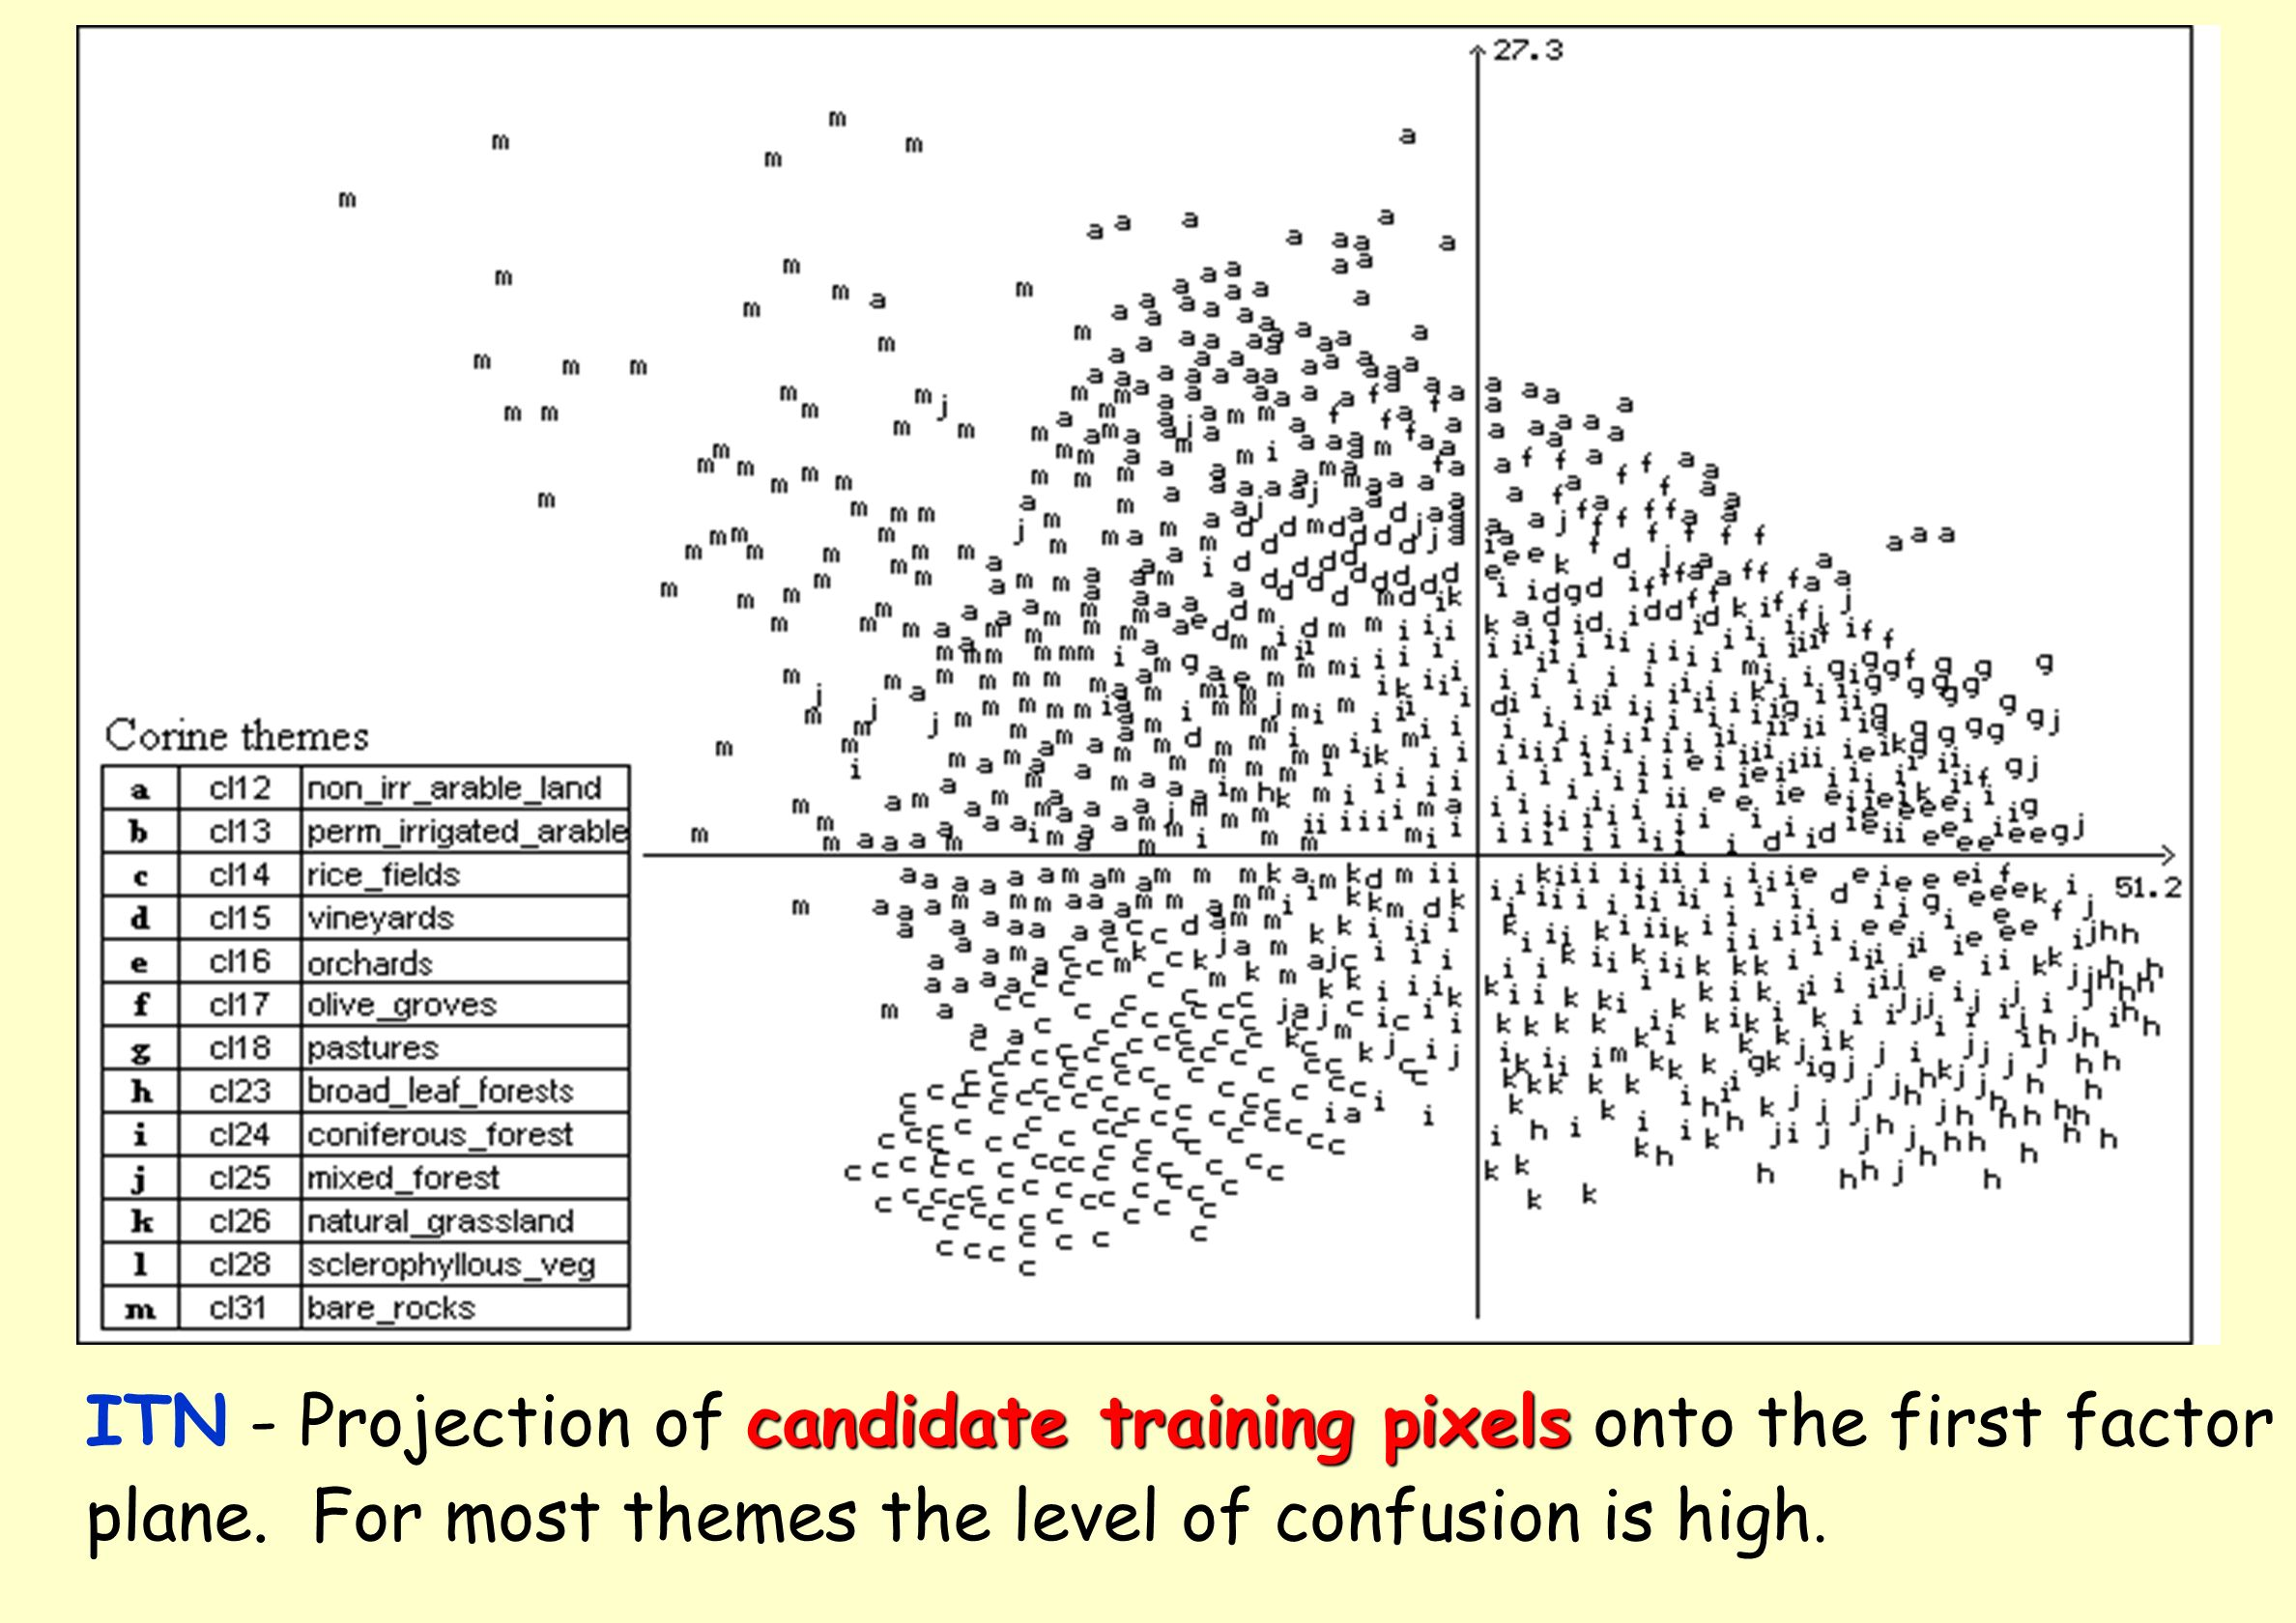 candidate training pixels ITN - Projection of candidate training pixels onto the first factor plane. For most themes the level of confusion is high.